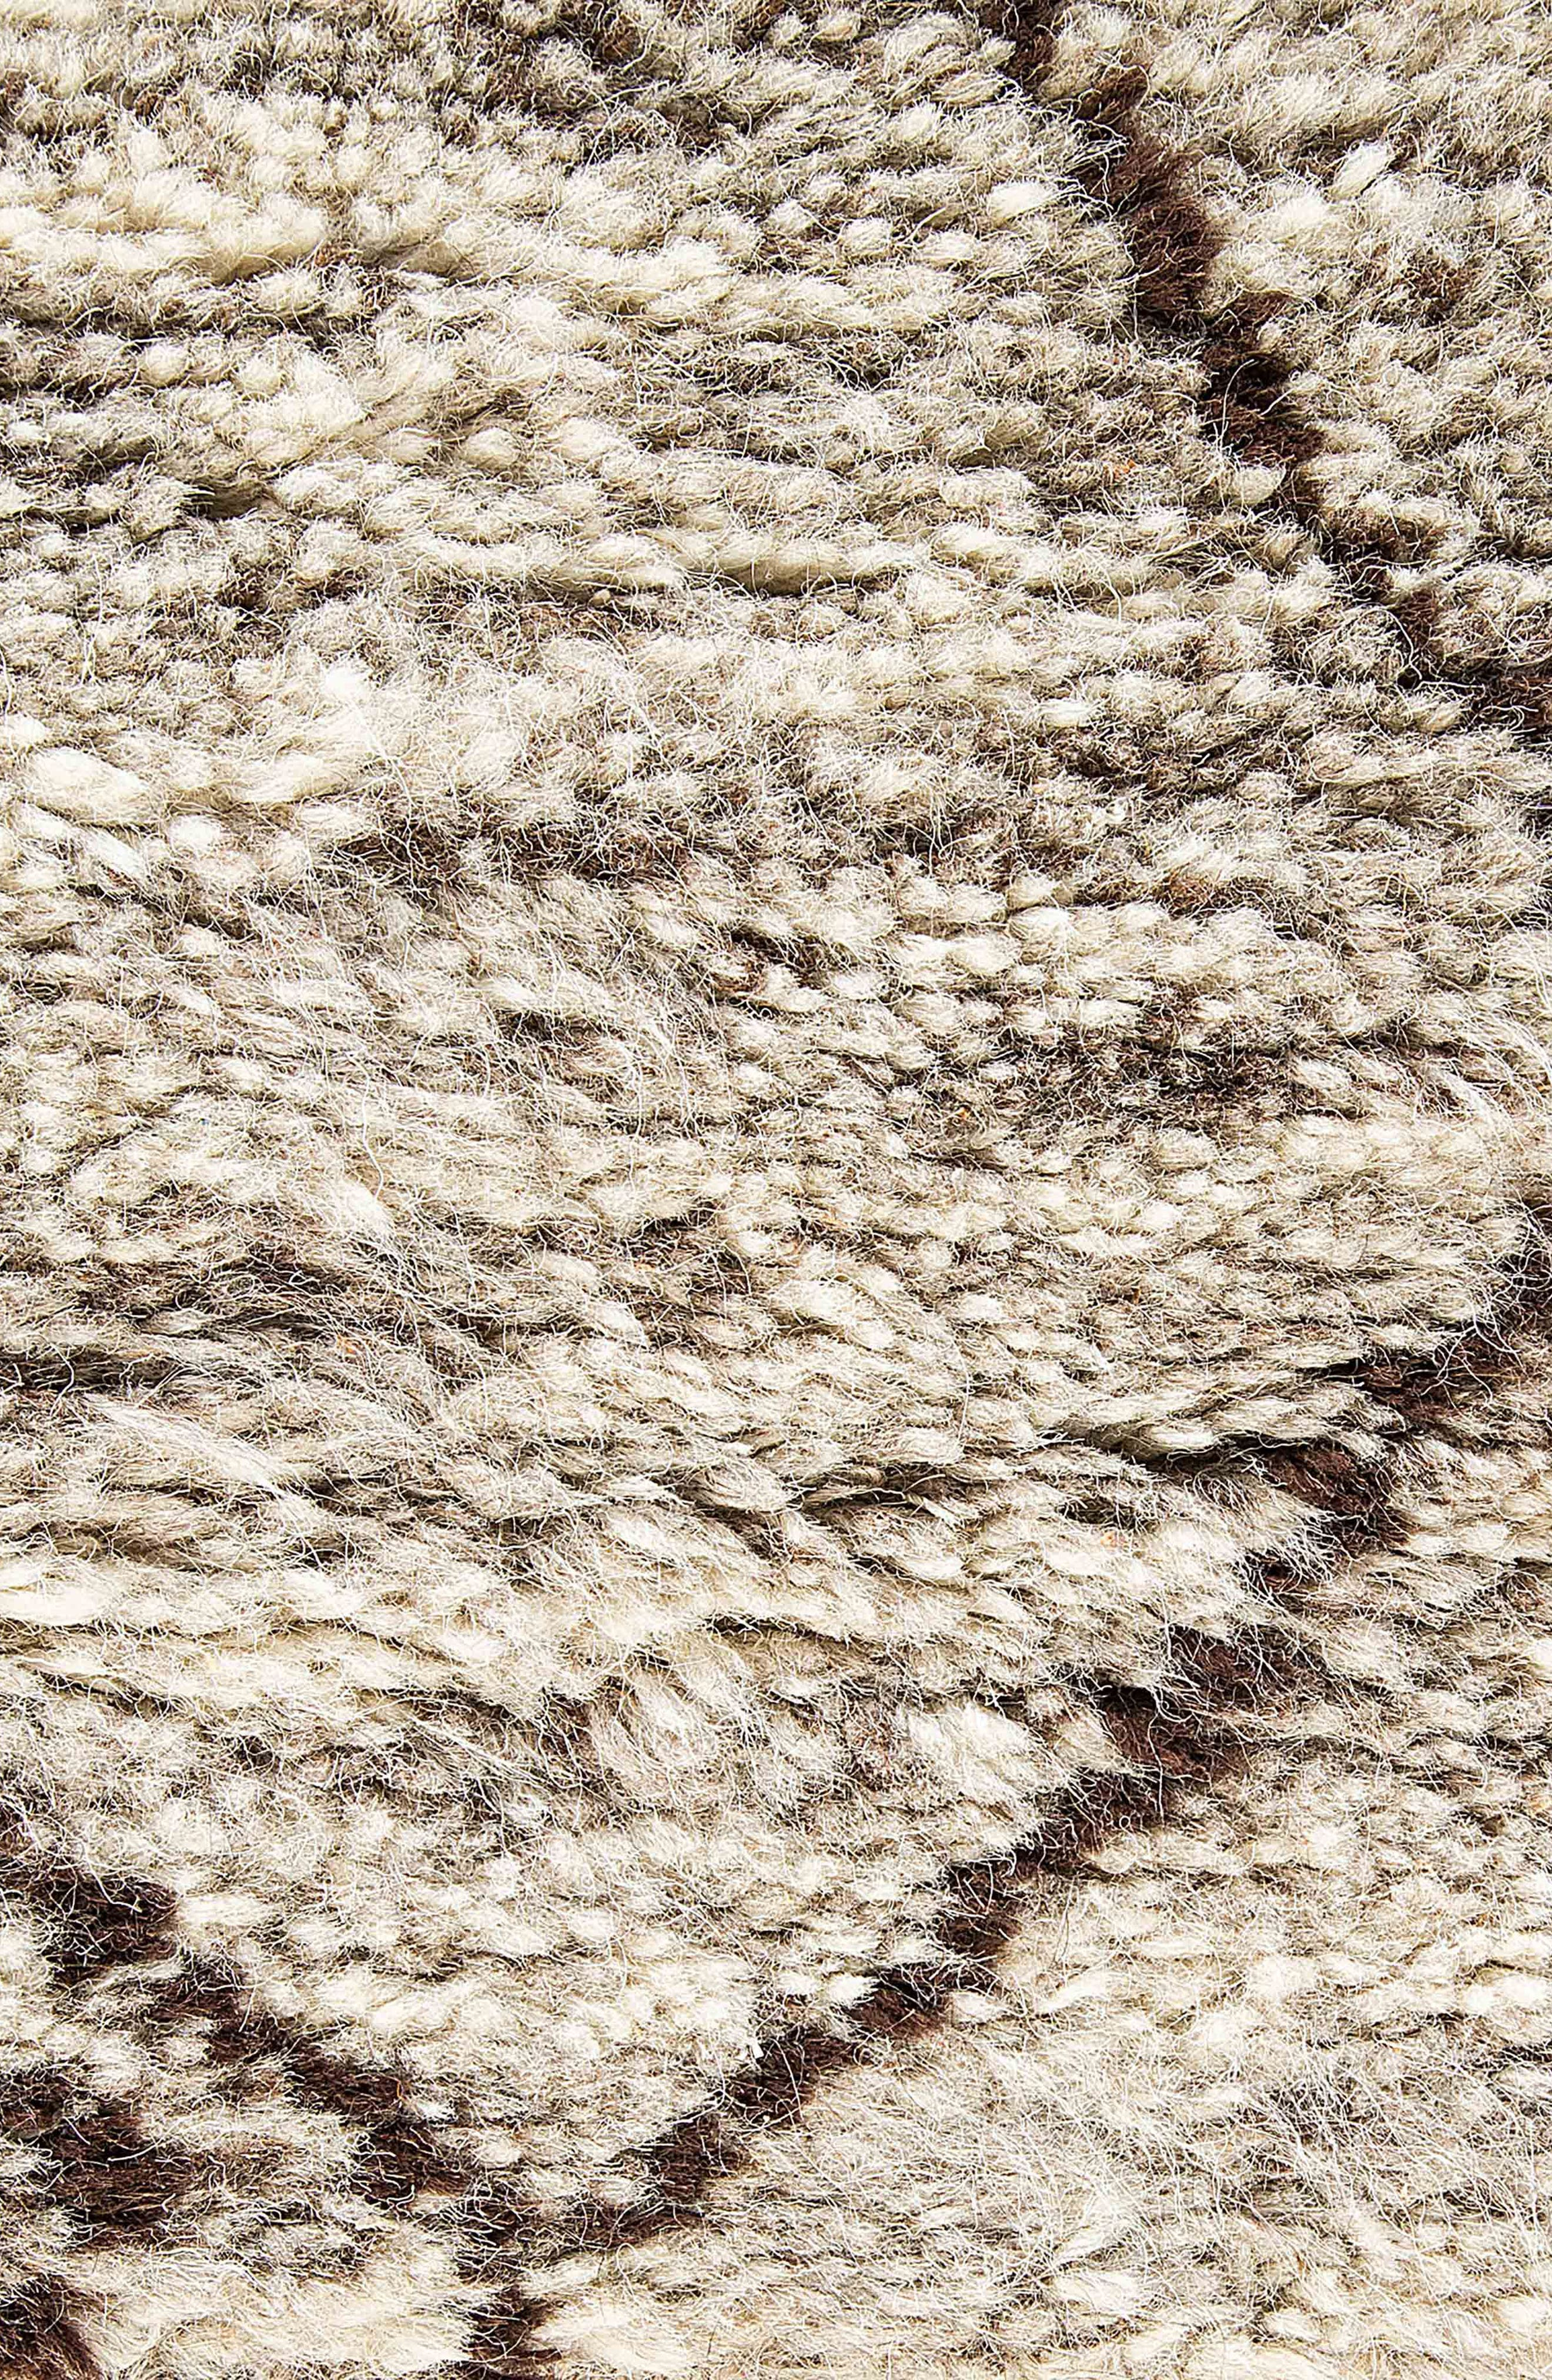 'Zola' Hand Knotted Wool Rug,                             Alternate thumbnail 4, color,                             NATURAL/ BROWN